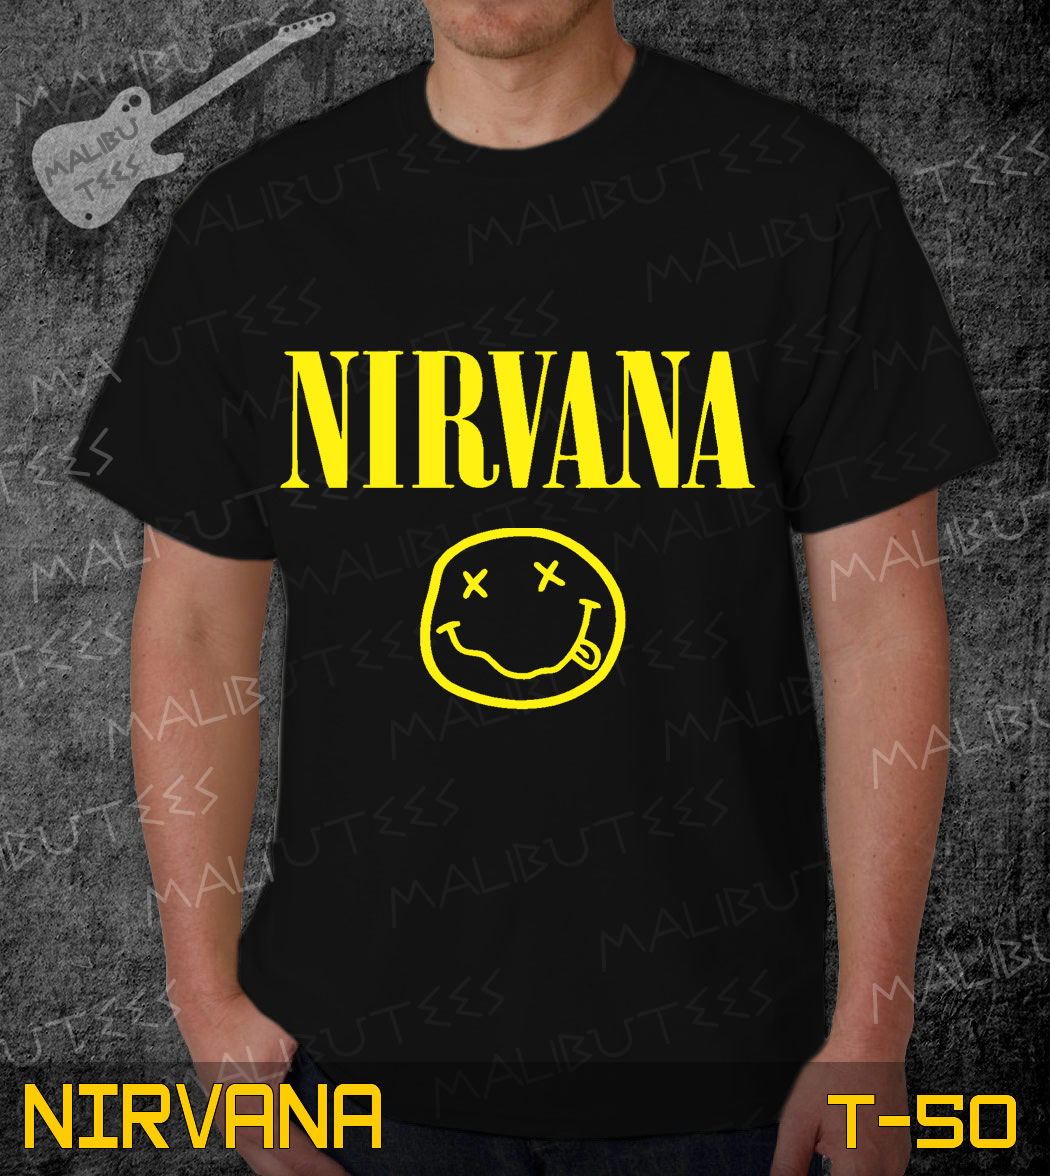 Camiseta Infantil Nirvana Rock no Elo7  f8a193db654